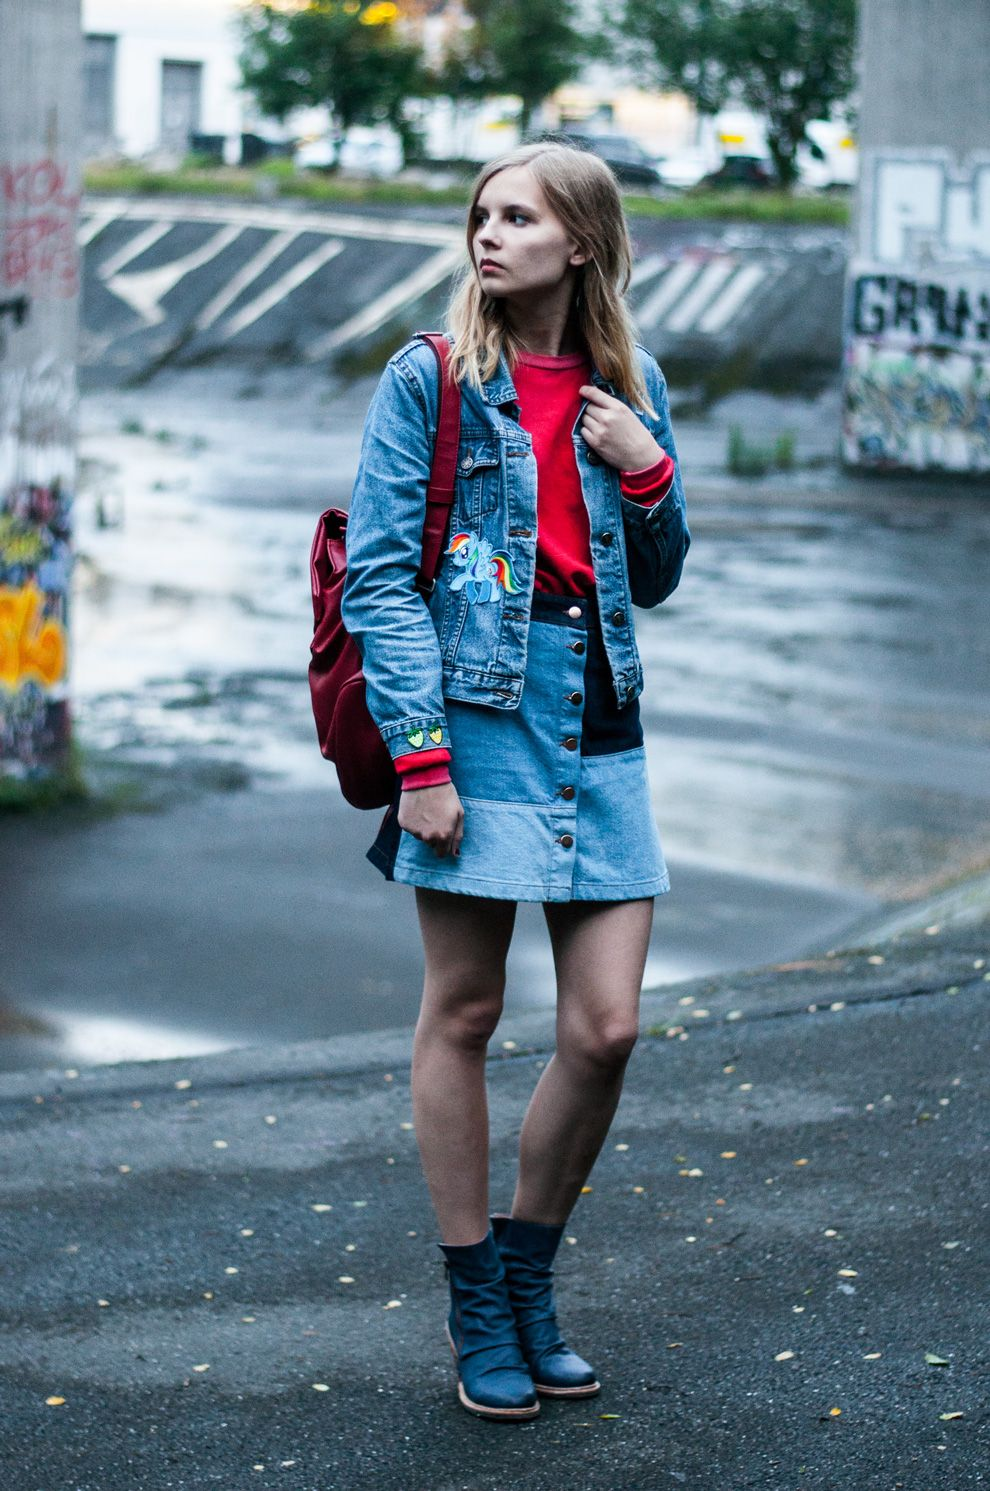 Streetstyle Outfit, Look: Red Sweater, Pullover with patched Denim Jacket,  Patchwork Denim